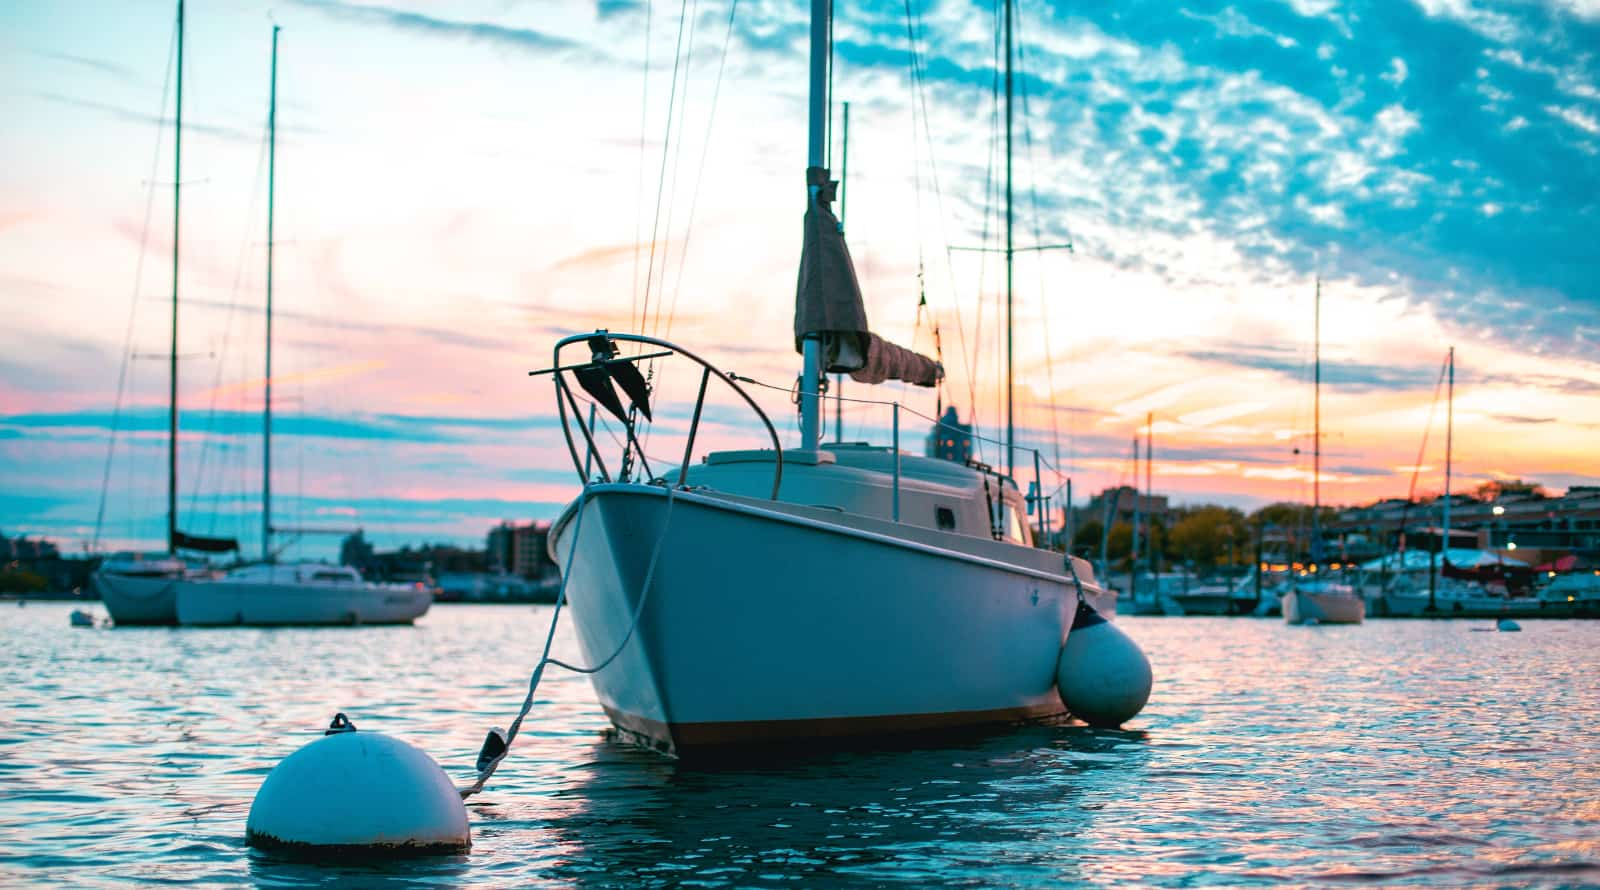 Marine Injury: Obligations To Those Renting Boats